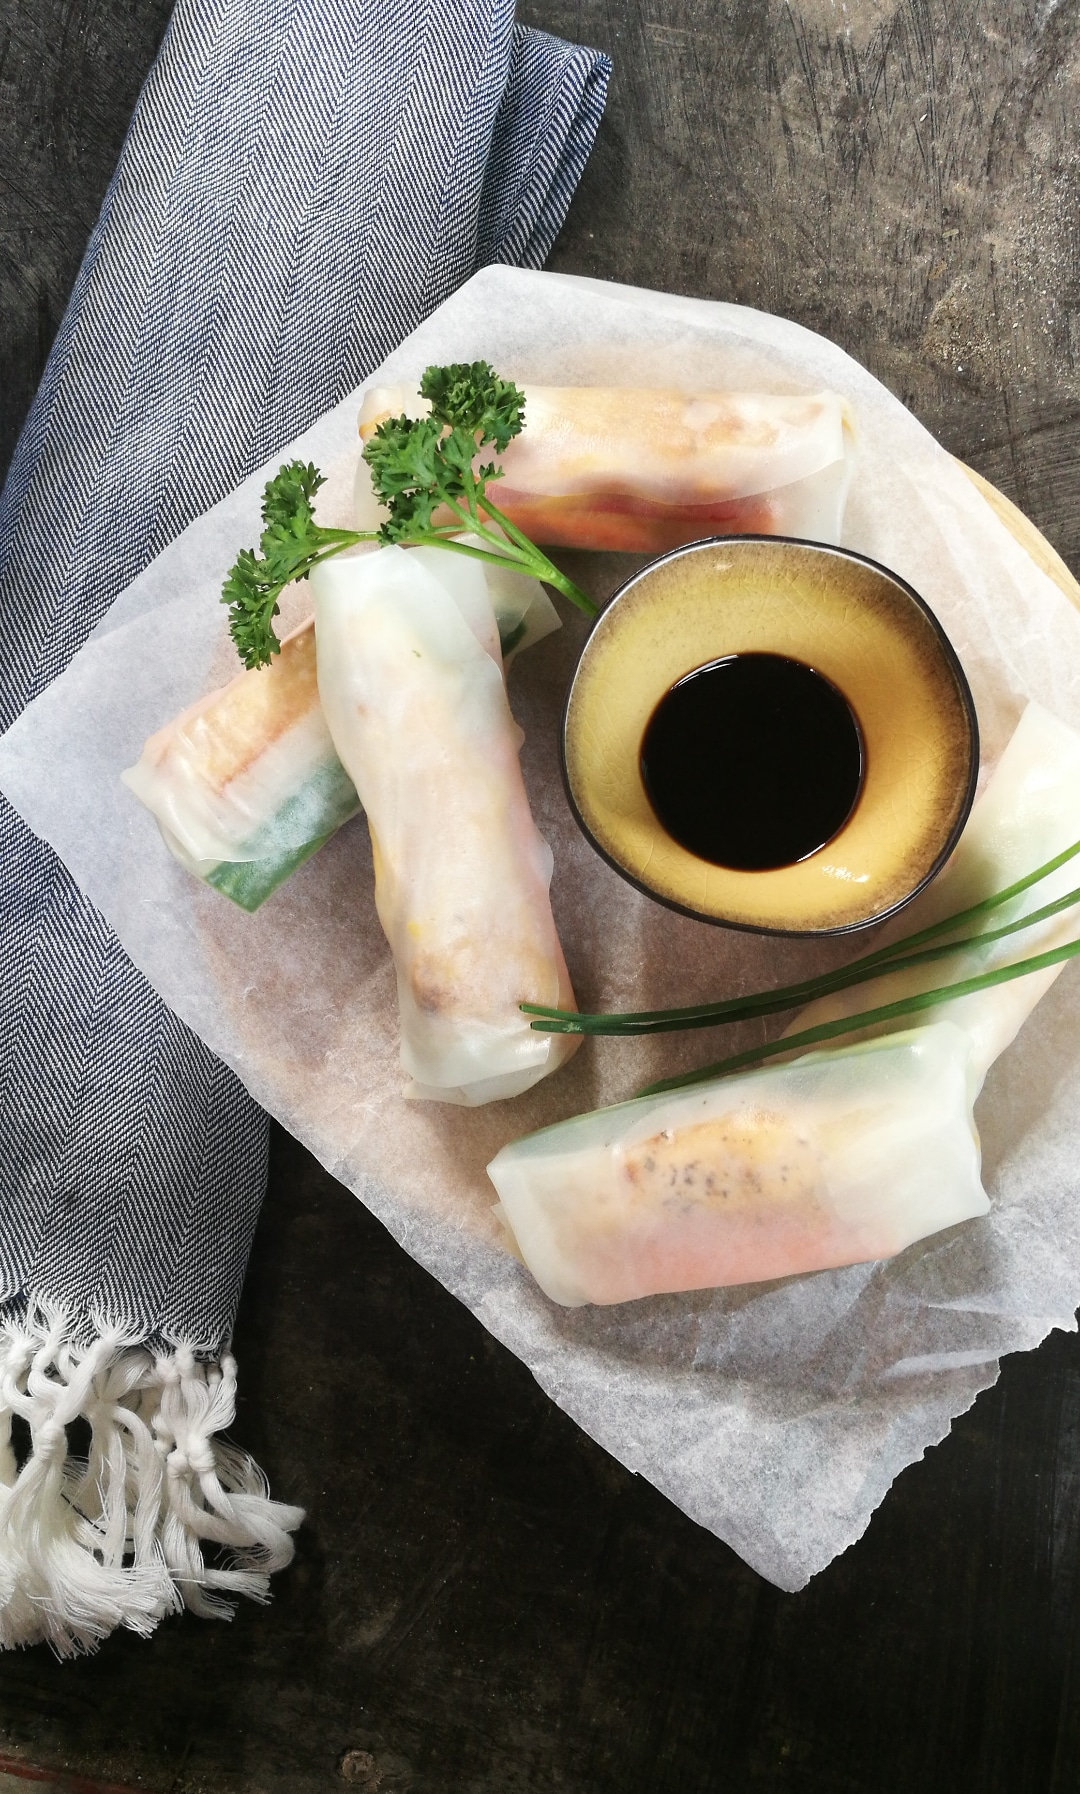 springrolls in summertime